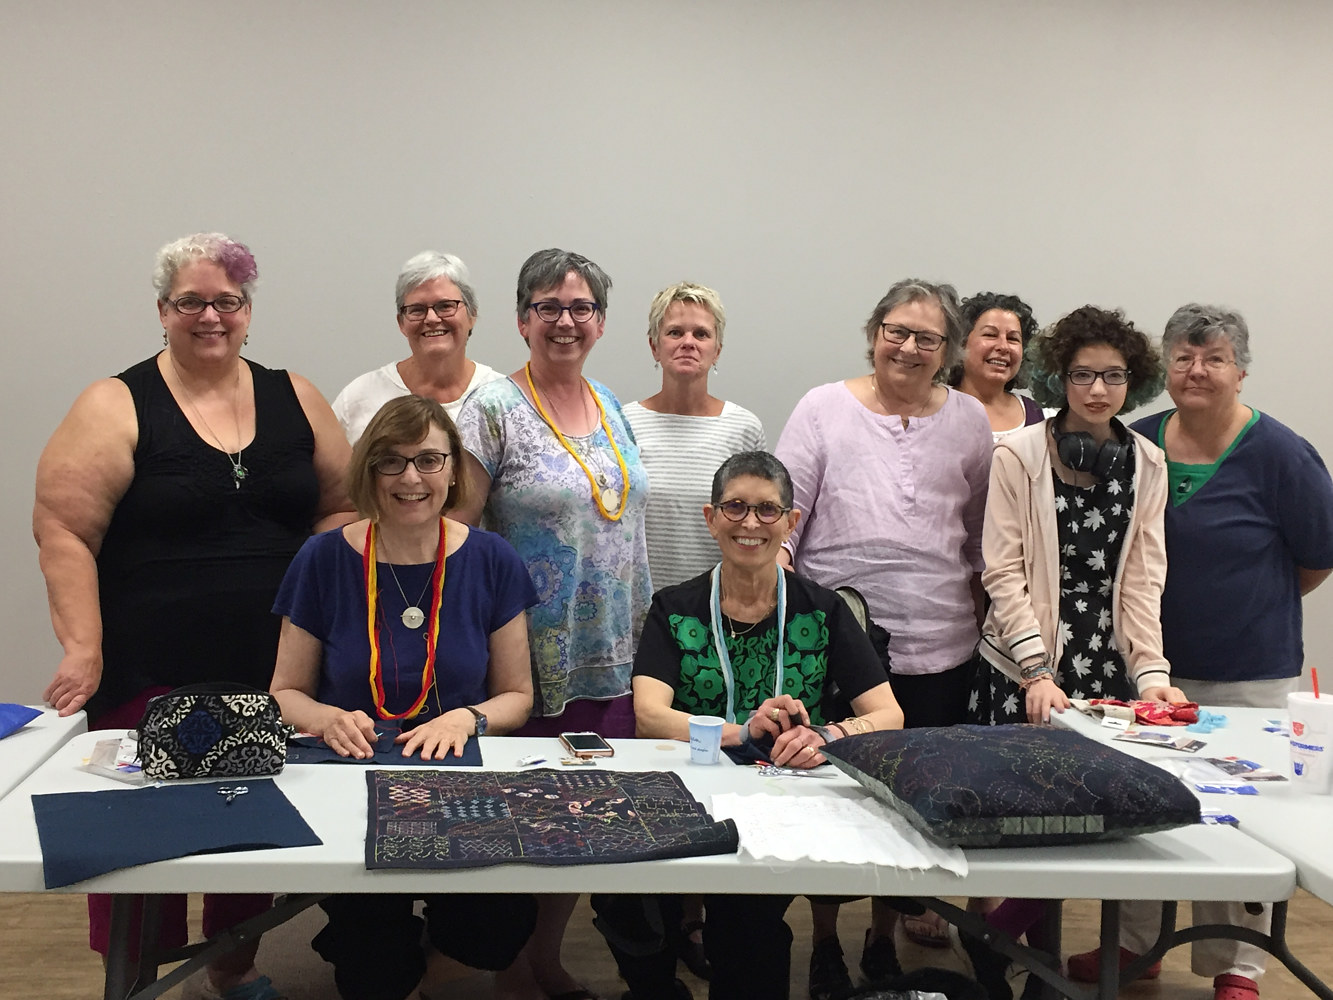 Intro to Sashiko Stitching, Blue Bar Quilts, Madison WI 2017 by Maday Delgado